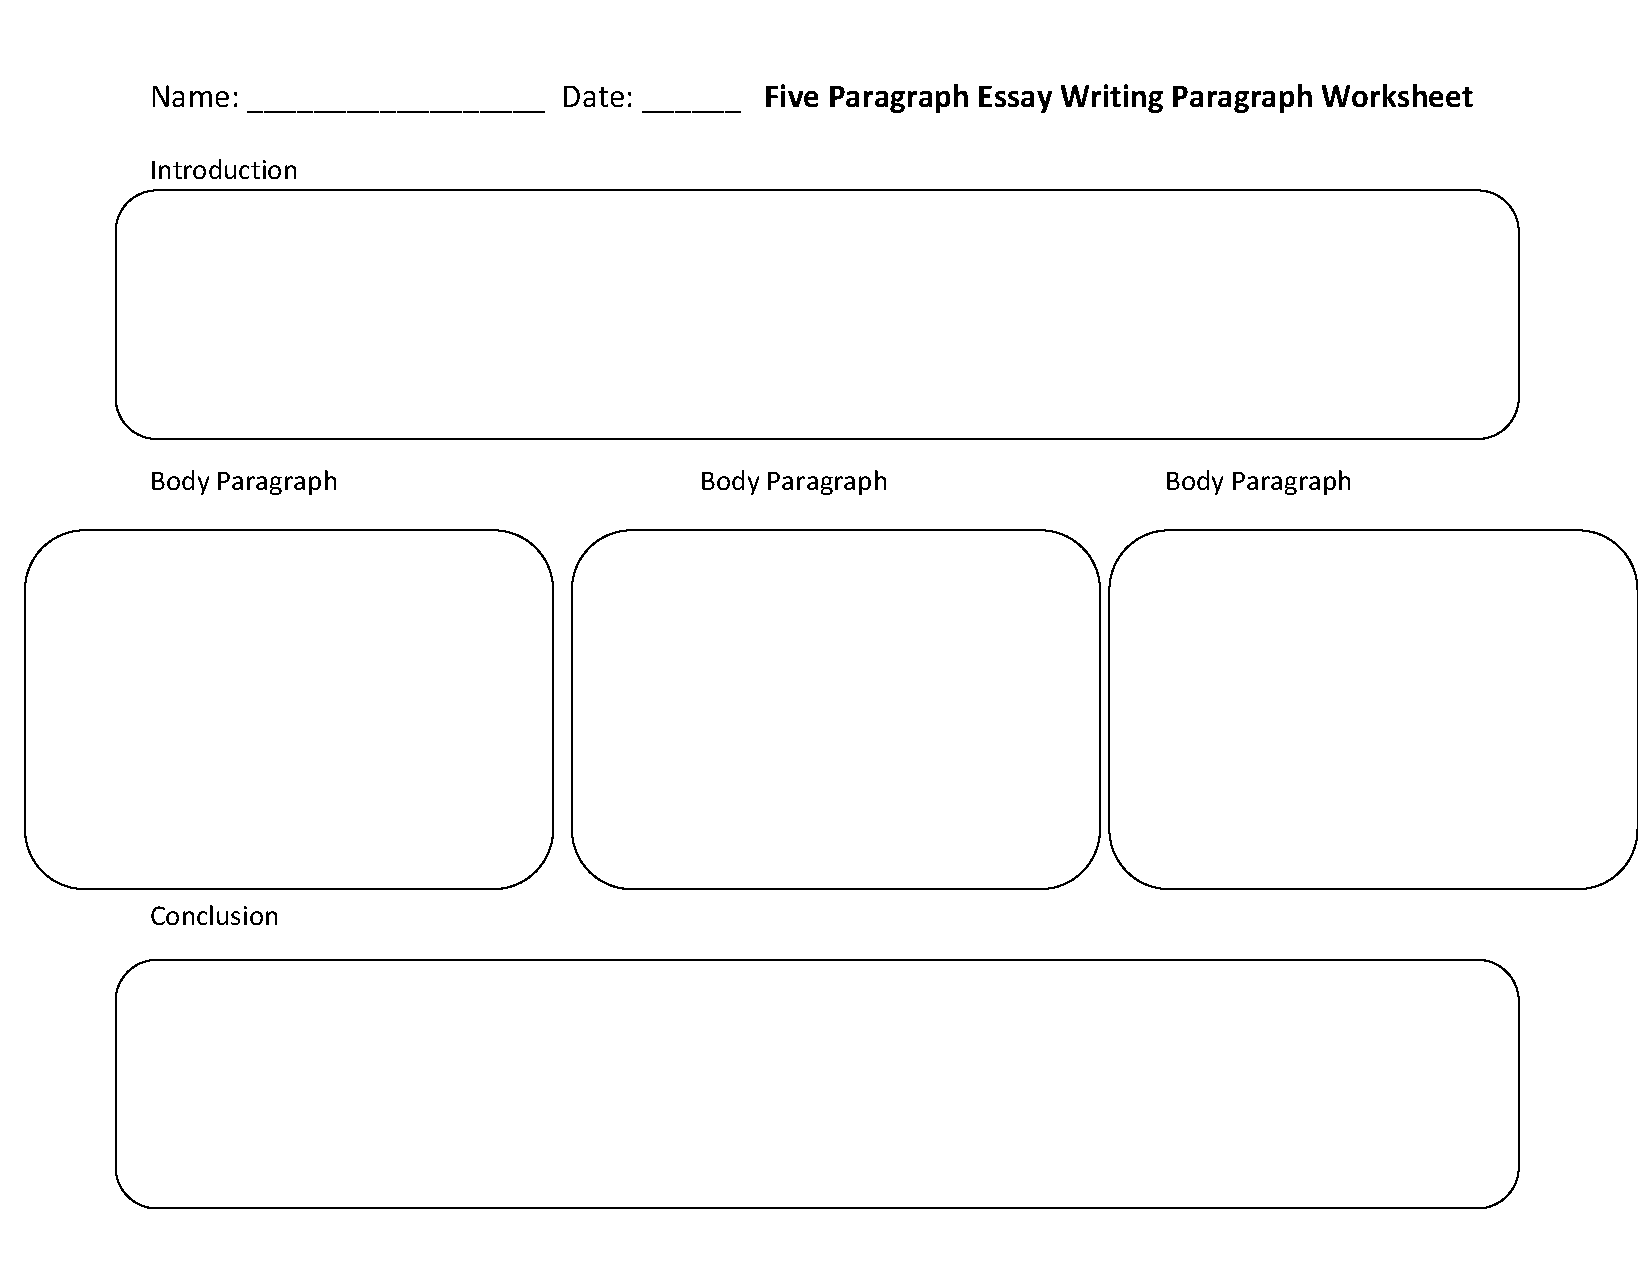 Worksheets Writing Paragraphs Worksheet writing worksheets paragraph five essay worksheets